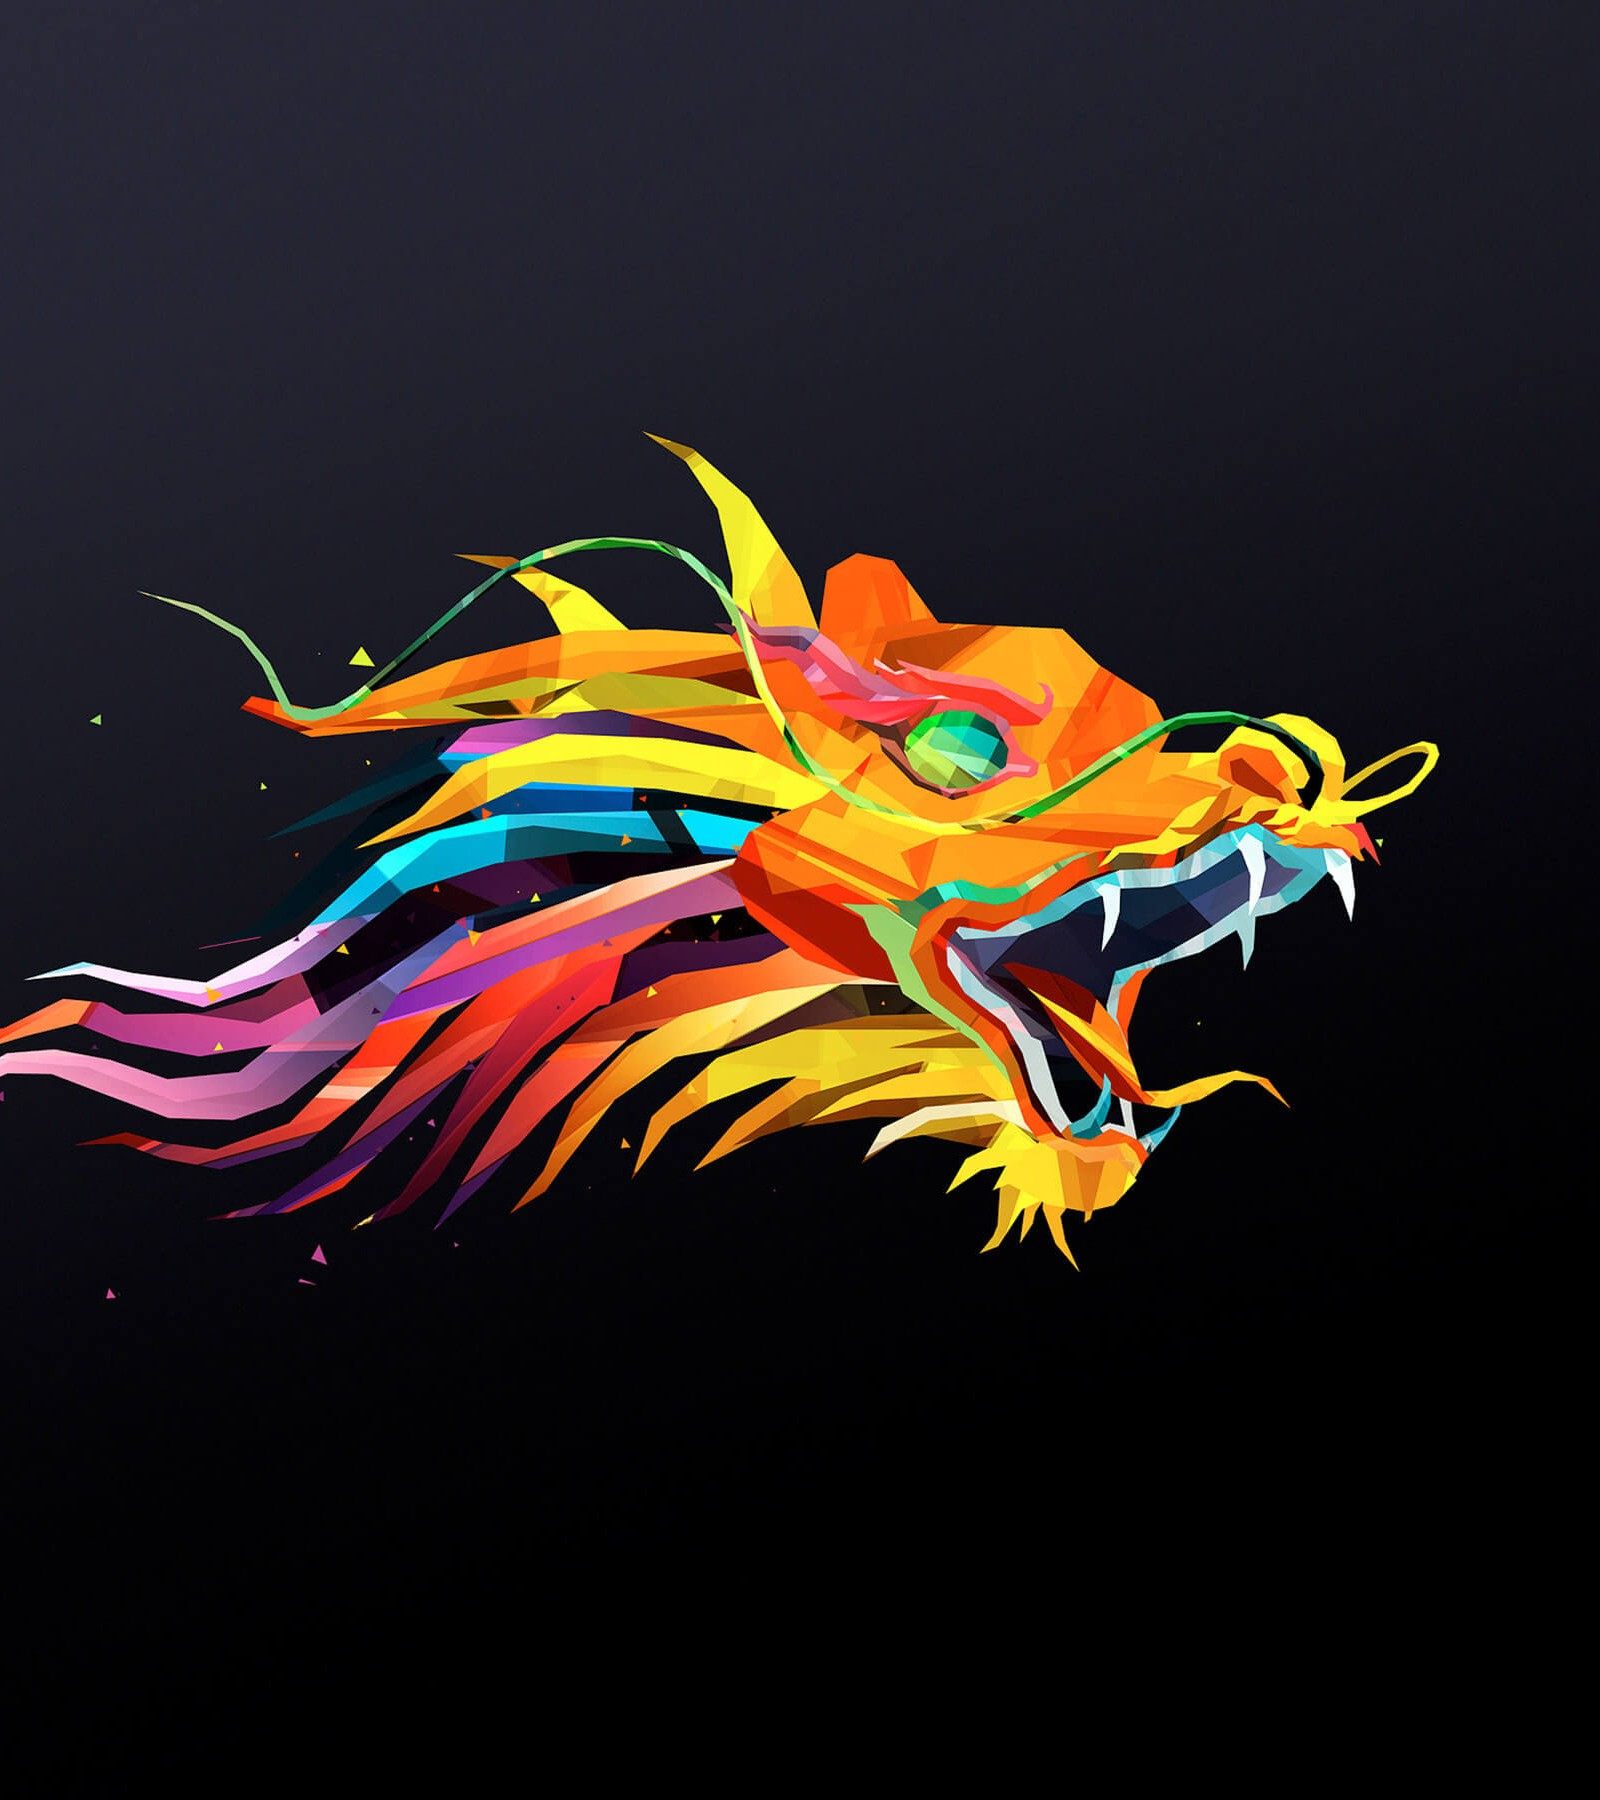 The Dragon HD wallpaper for Kindle Fire HDX 89   HDwallpapersnet 1600x1800